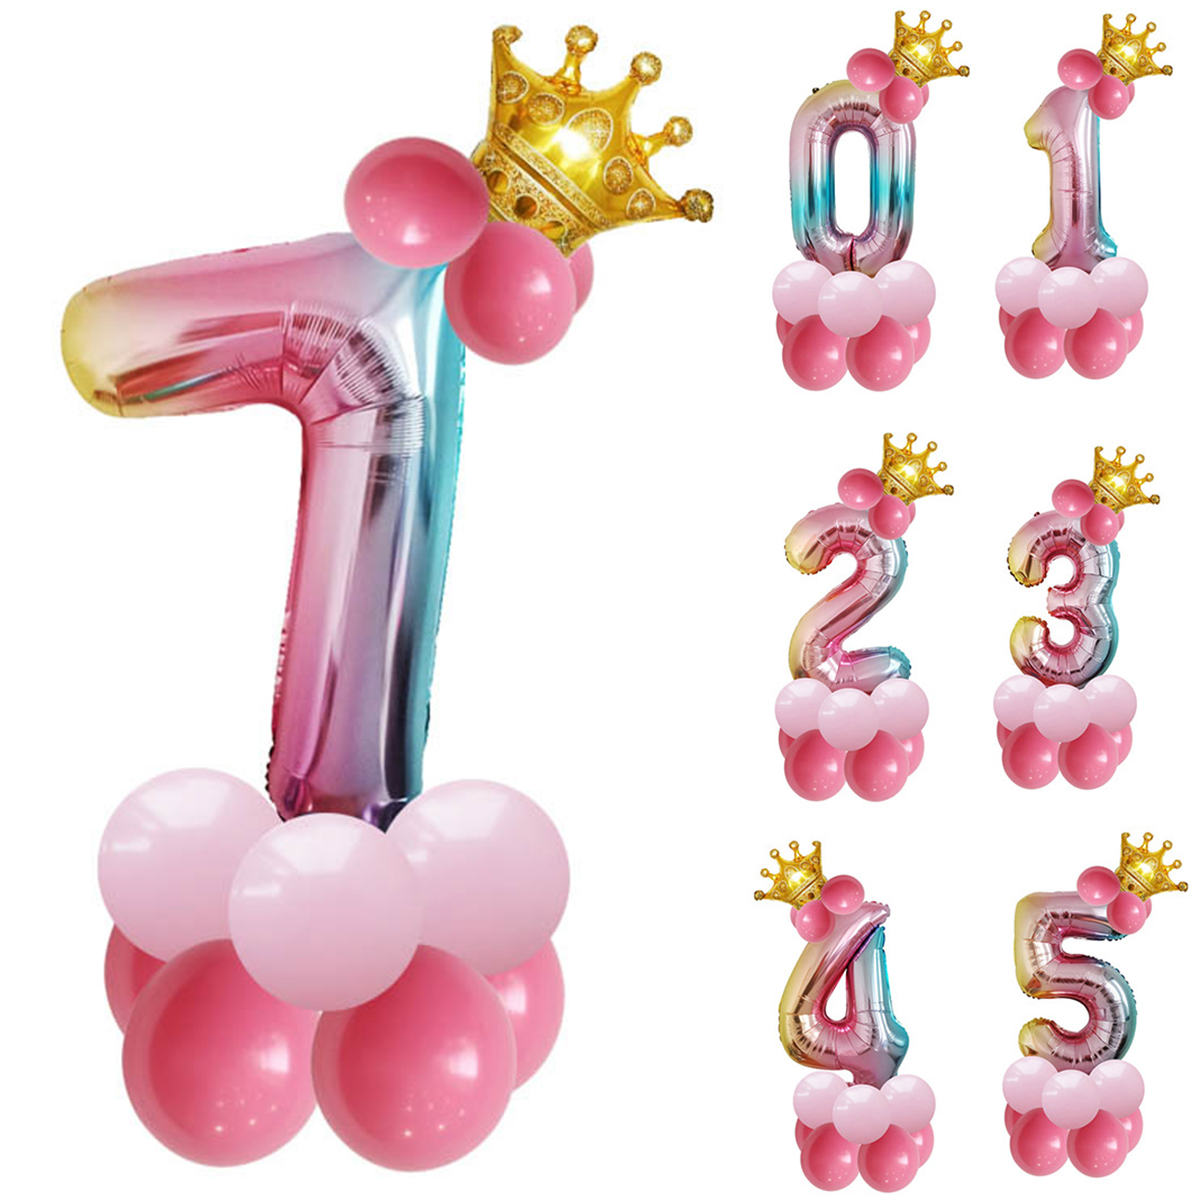 32 Inch Big Foil Birthday Balloons Air Helium Number Balloon Figures Happy Birthday Party Decorations Kid Baloons Birthday Balon